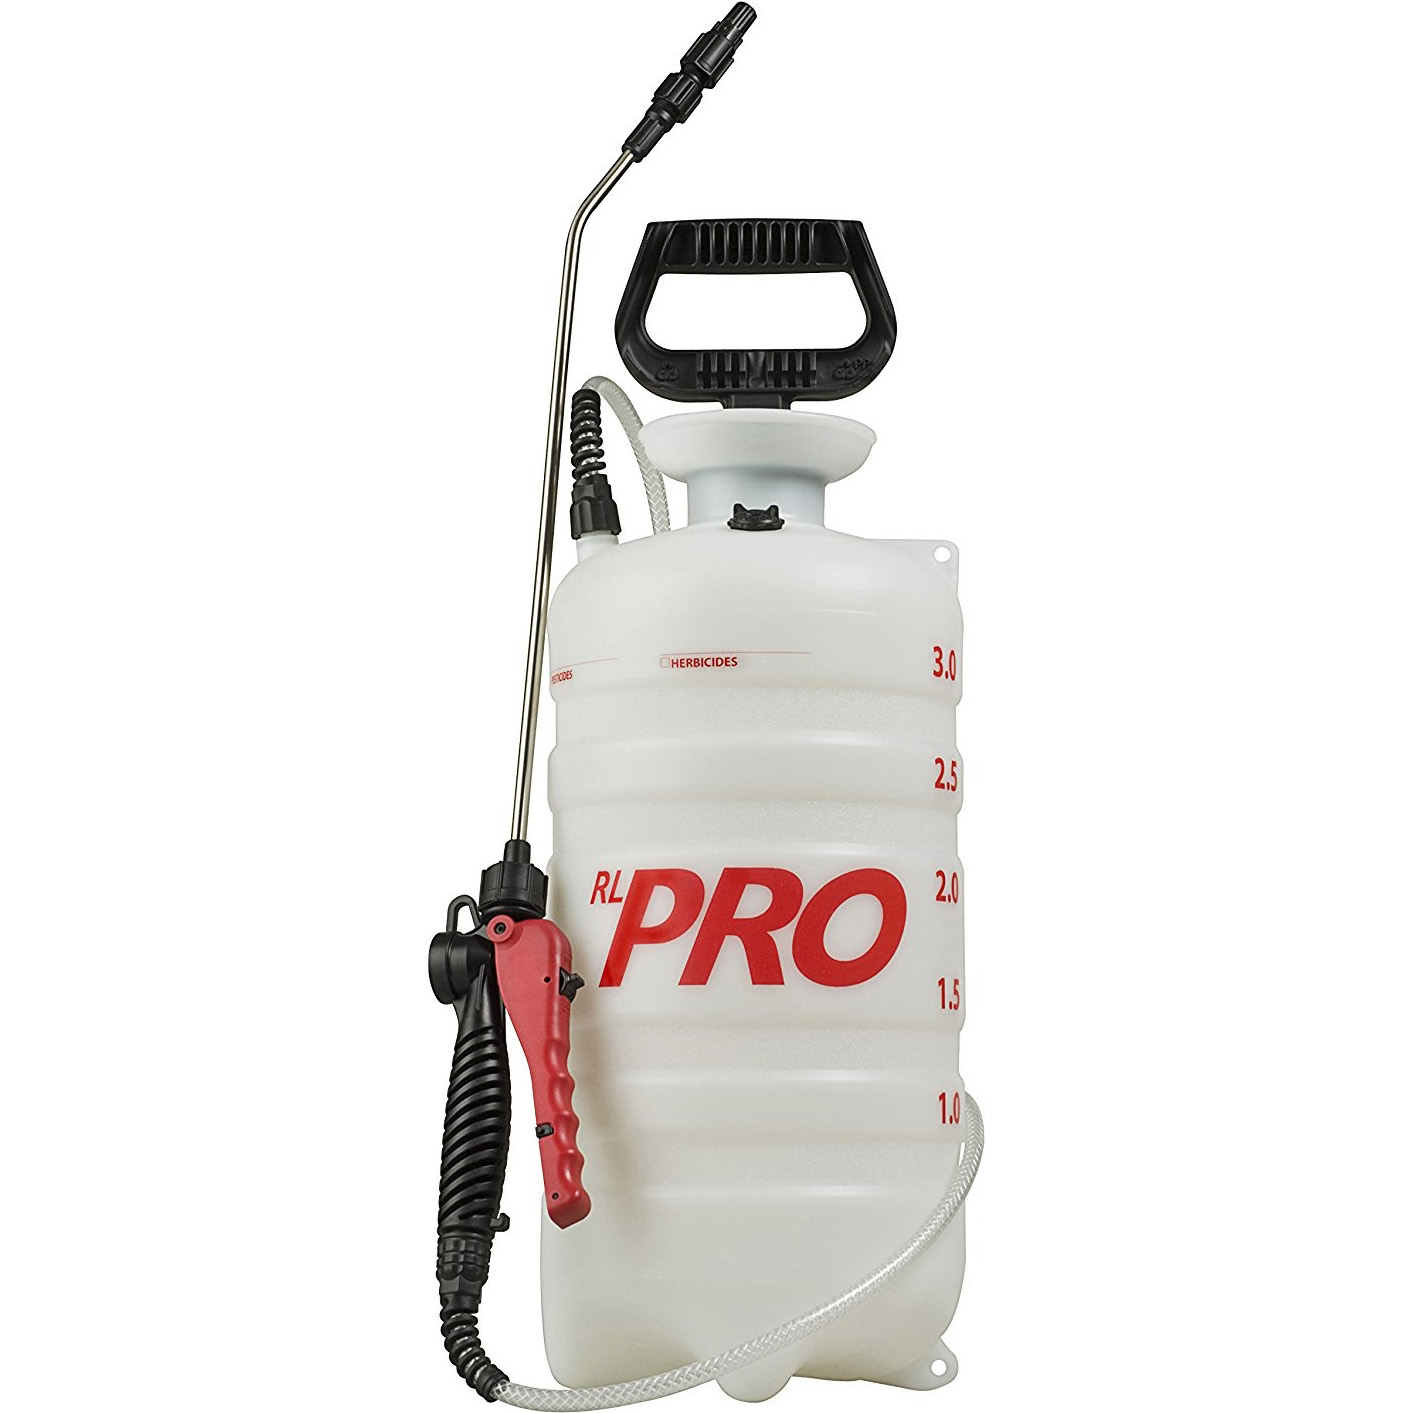 RL Flo-Master 3 Gallon Sprayer by Root Lowell Manufacturing Co.